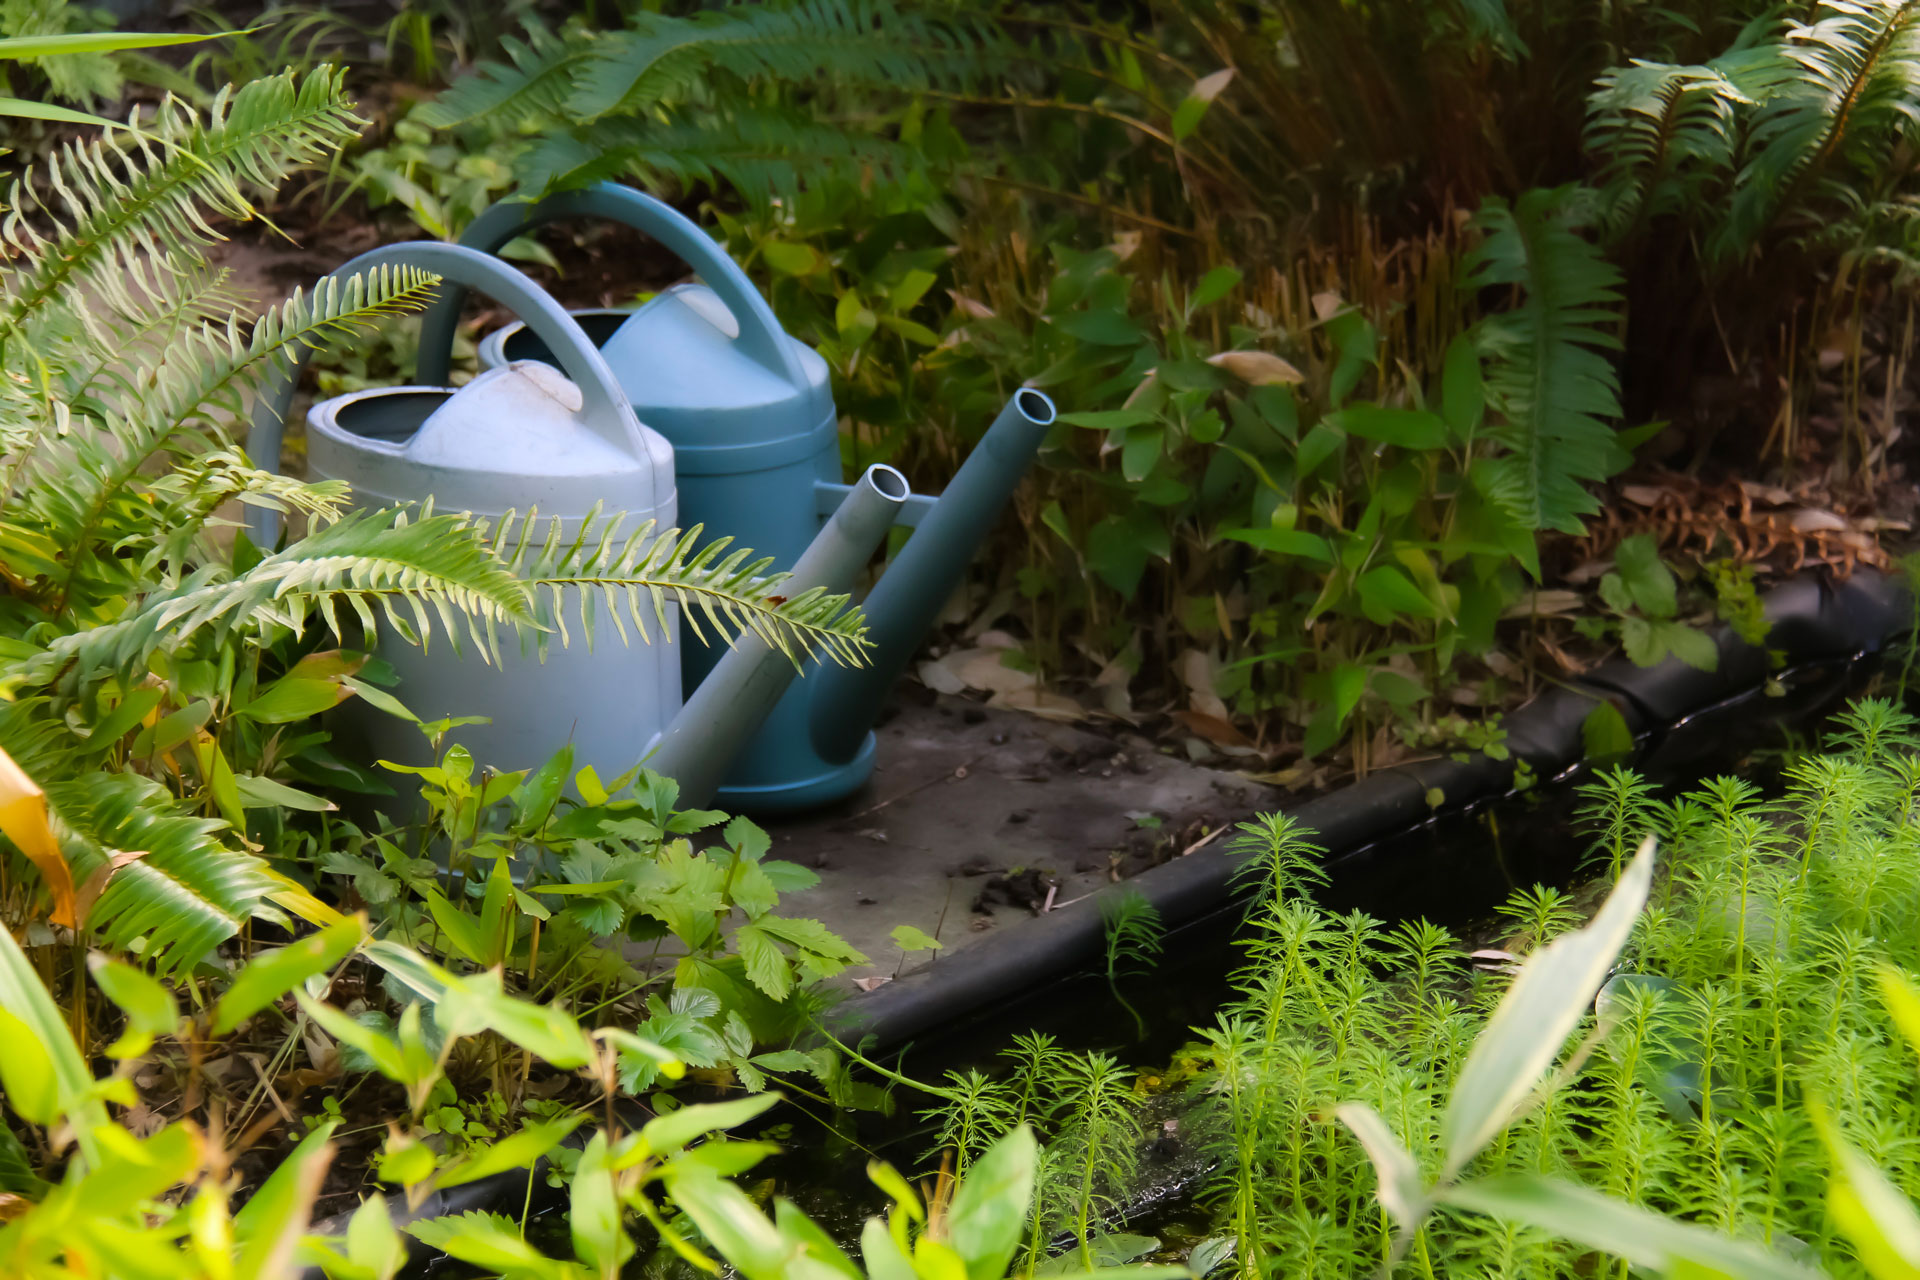 photo of two watering cans on the ground in the middle of plants